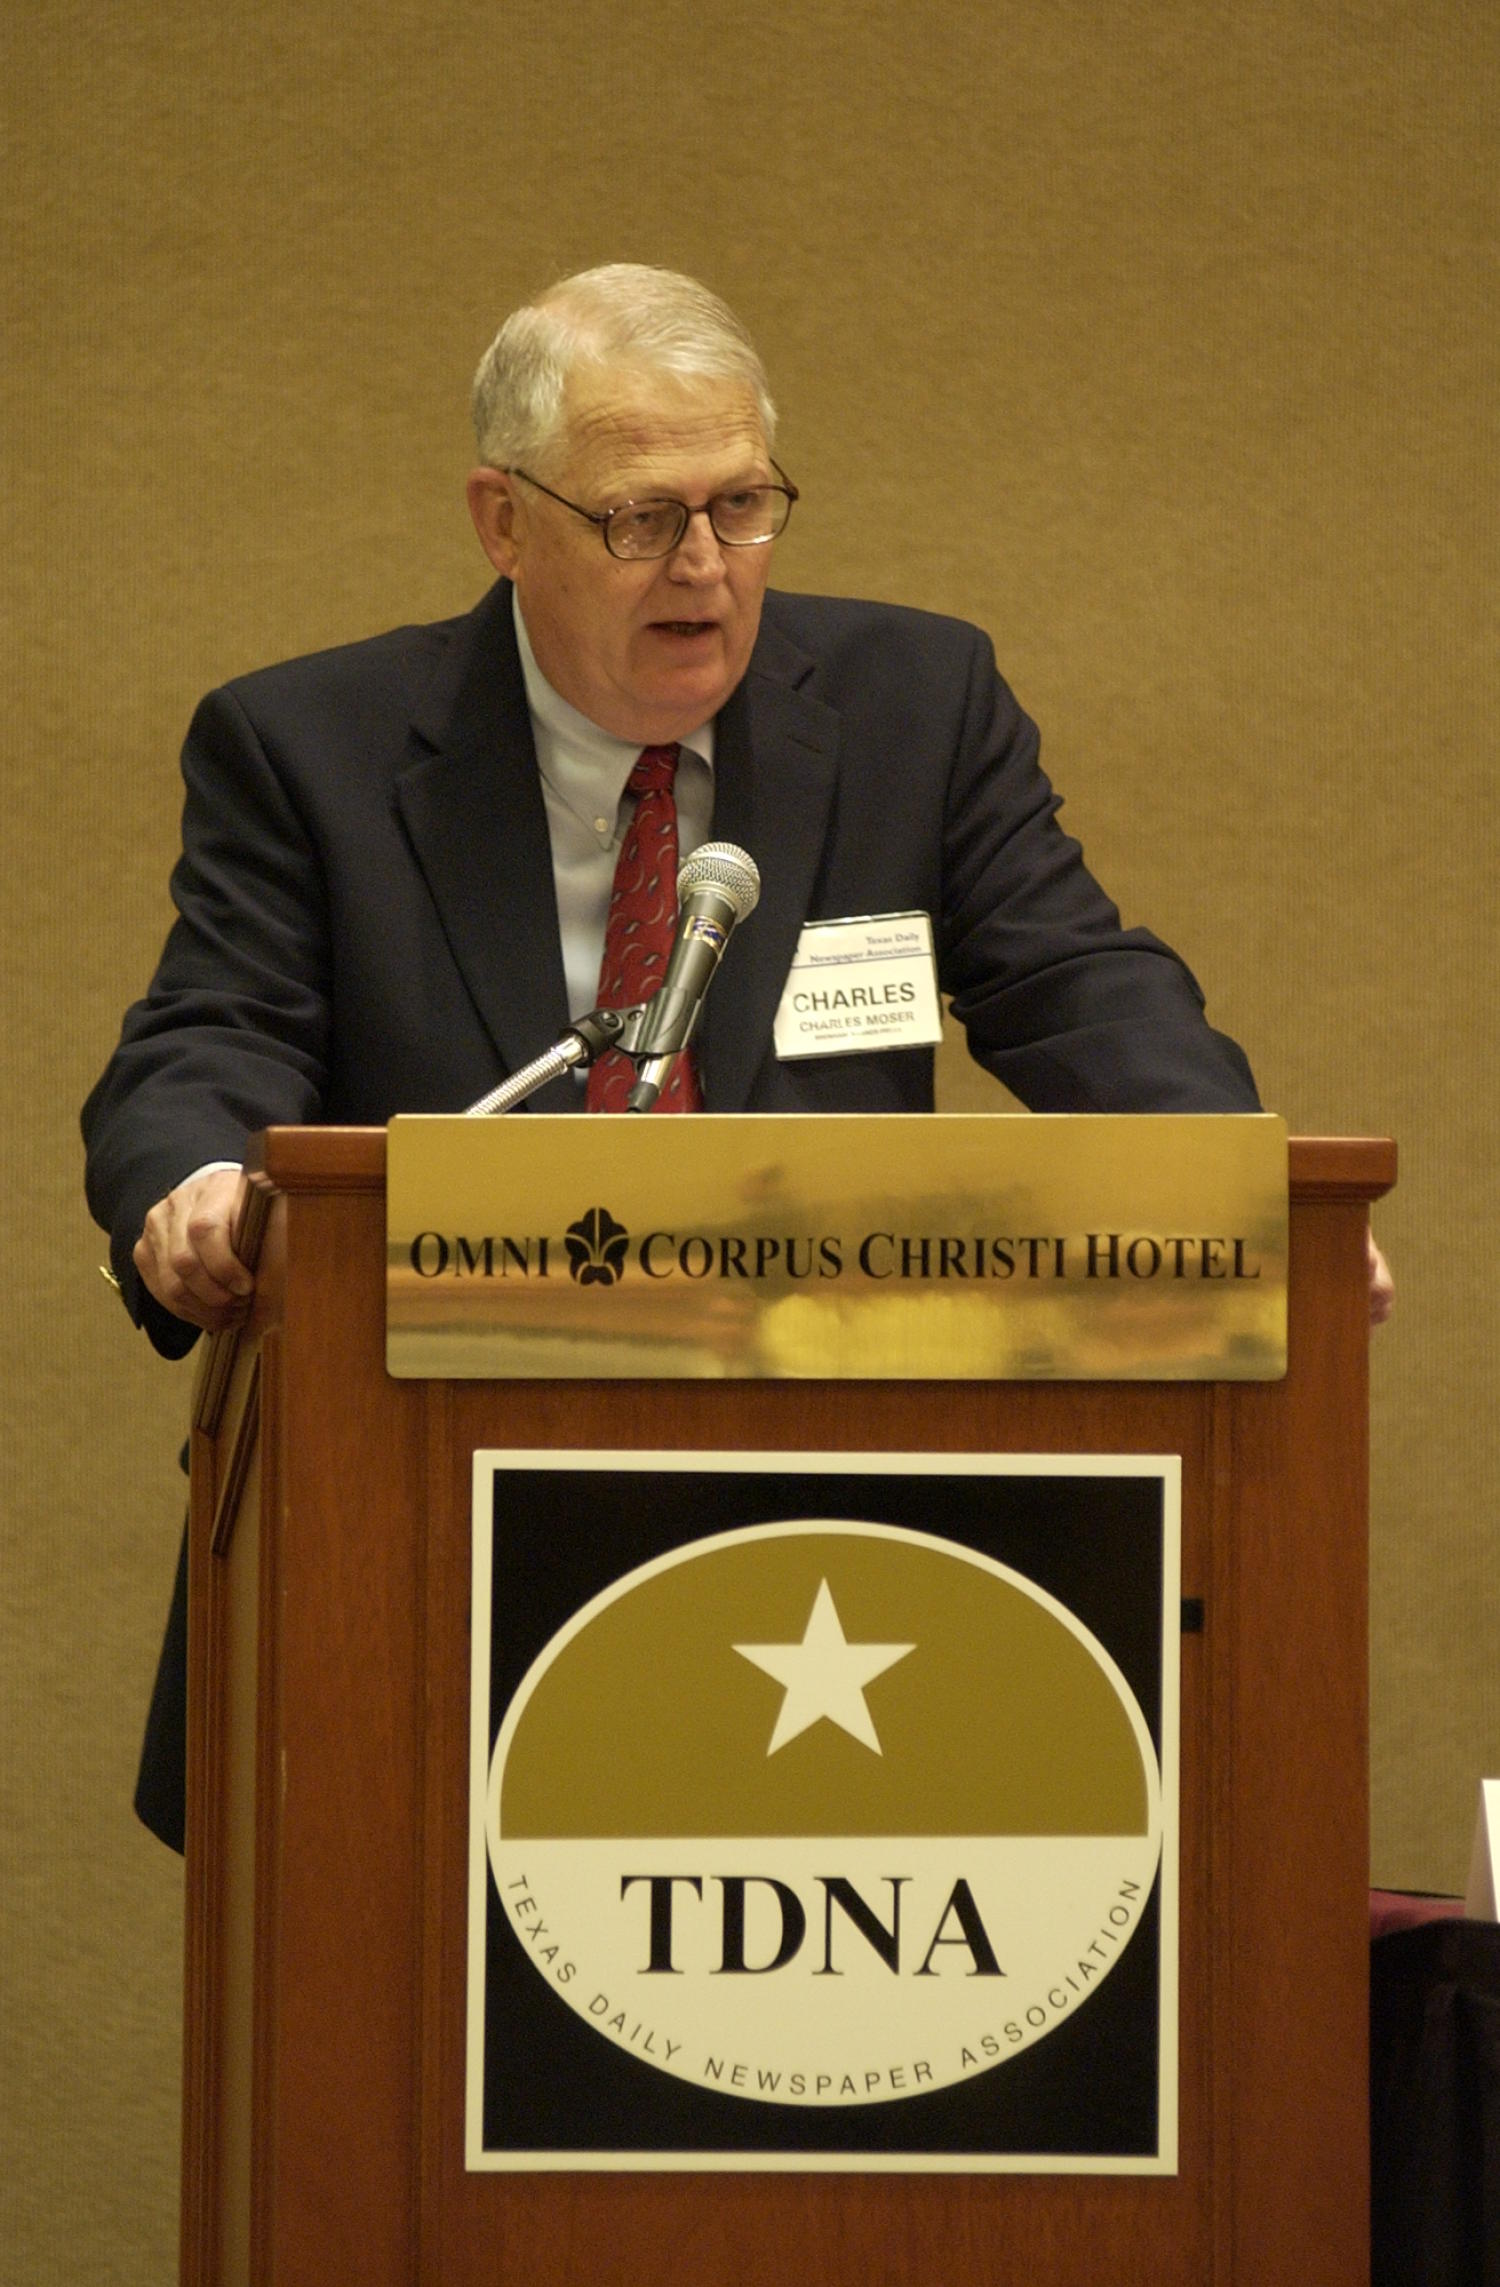 [Charles Moser speaking into microphone at TDNA conference], Photograph of Charles Moser speaking into a microphone during the 2004 Texas Daily News Association annual conference held in Corpus Christi.,